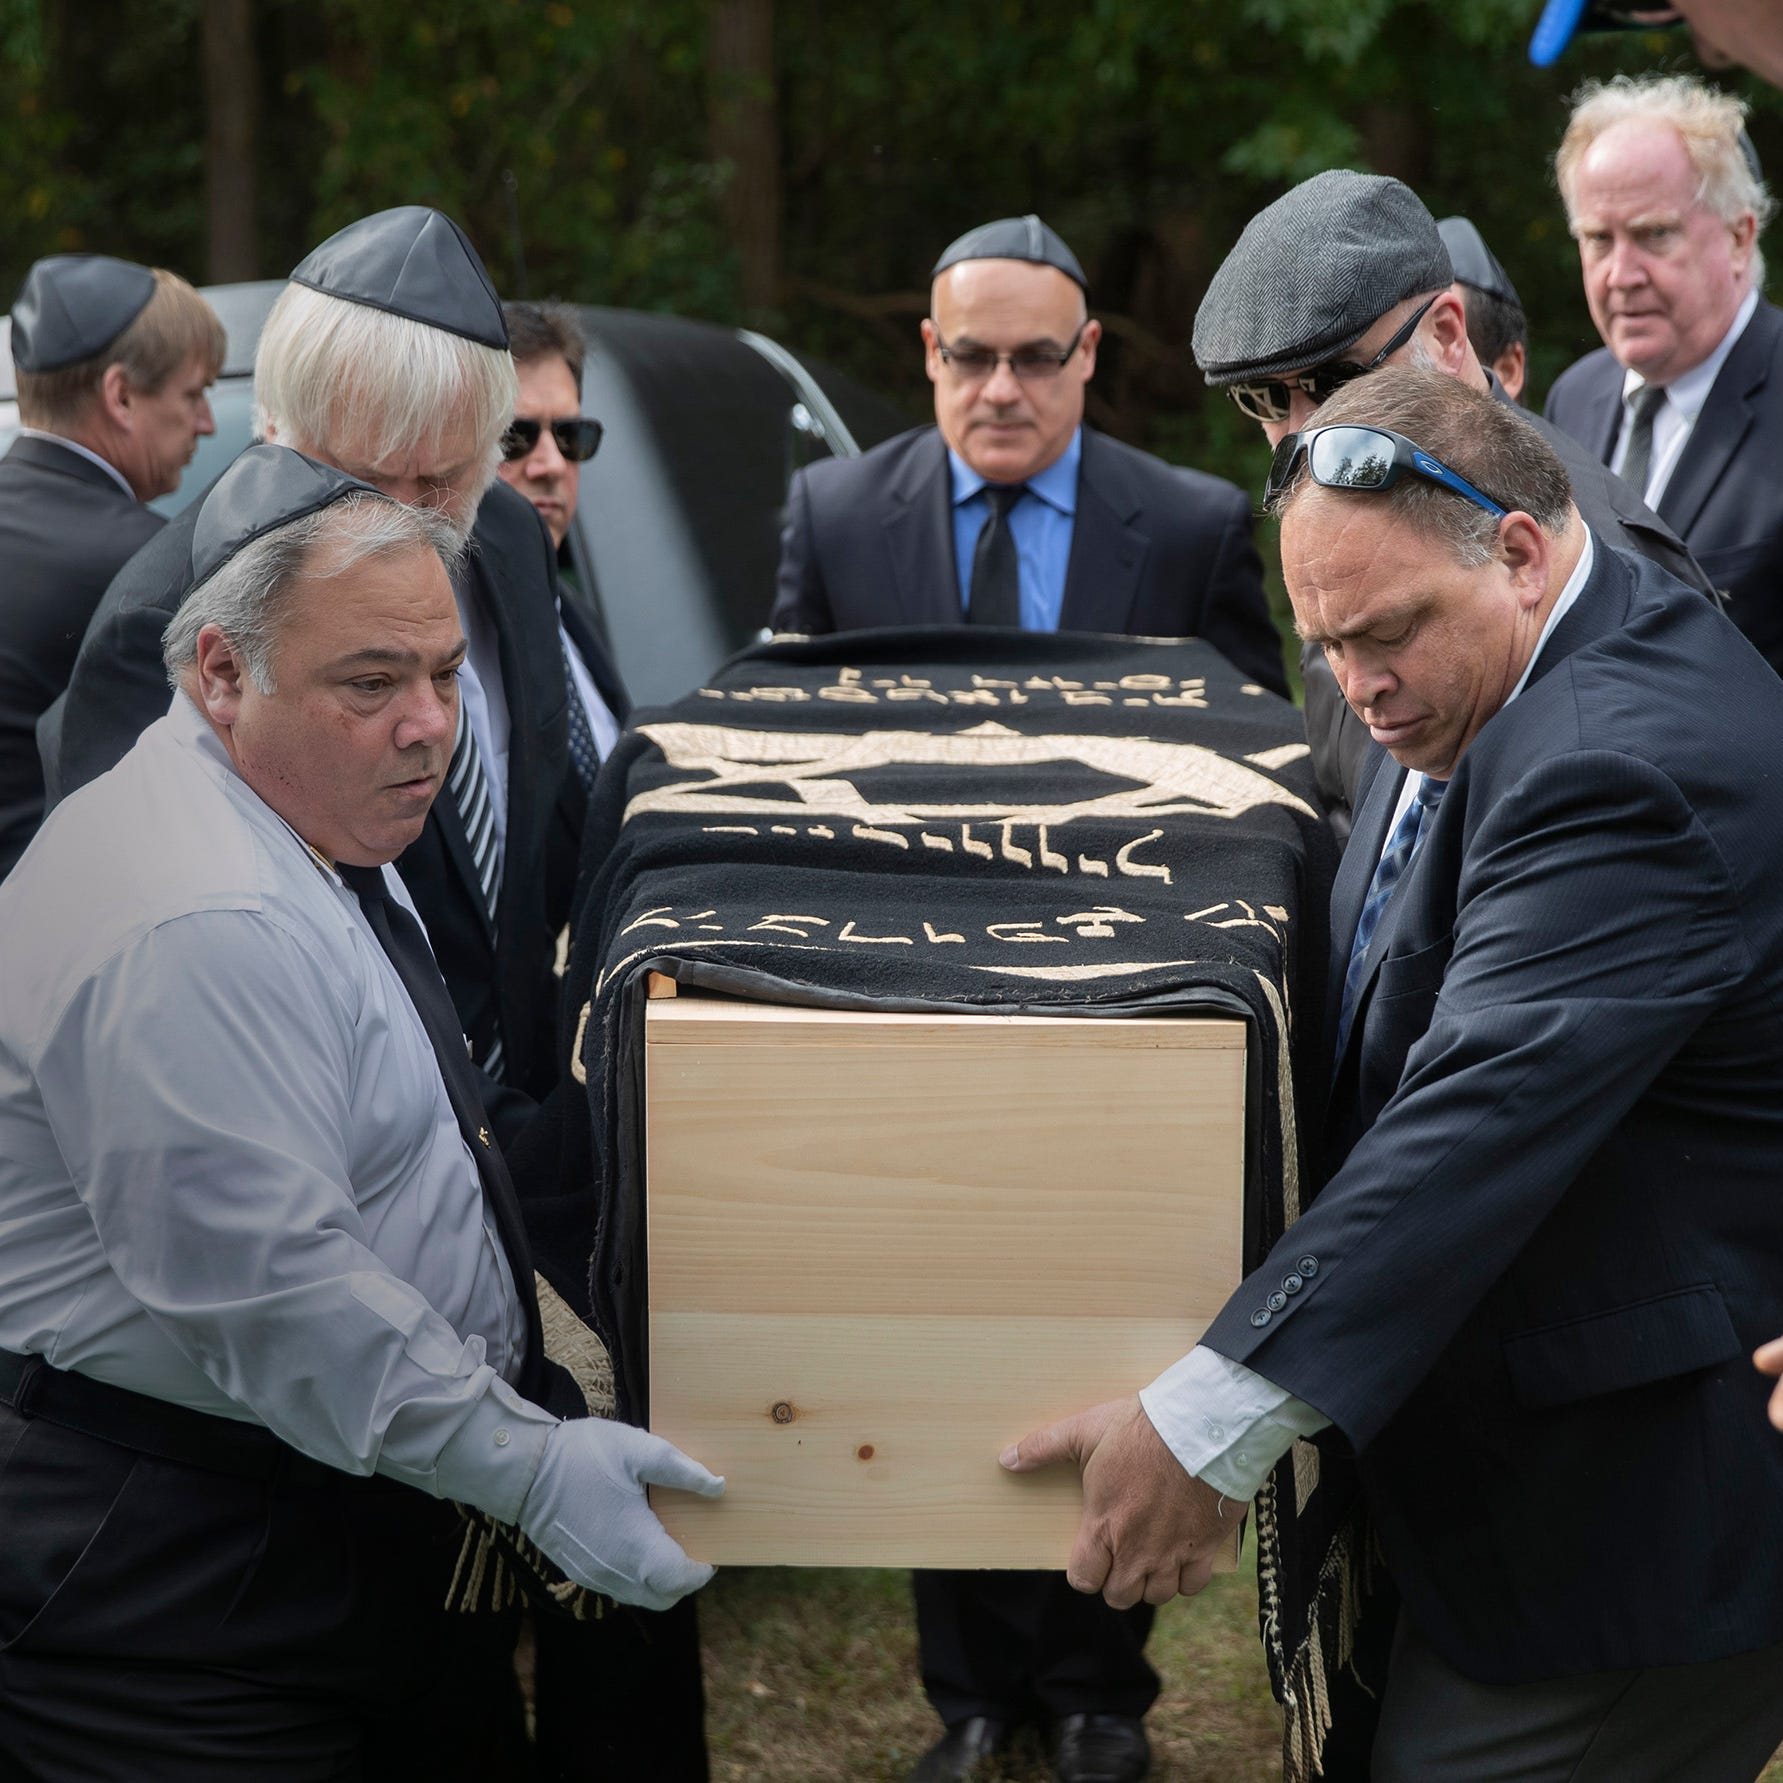 Jerry Wolkowitz funeral: Mourners celebrate 'life well lived' by photojournalist, EMT